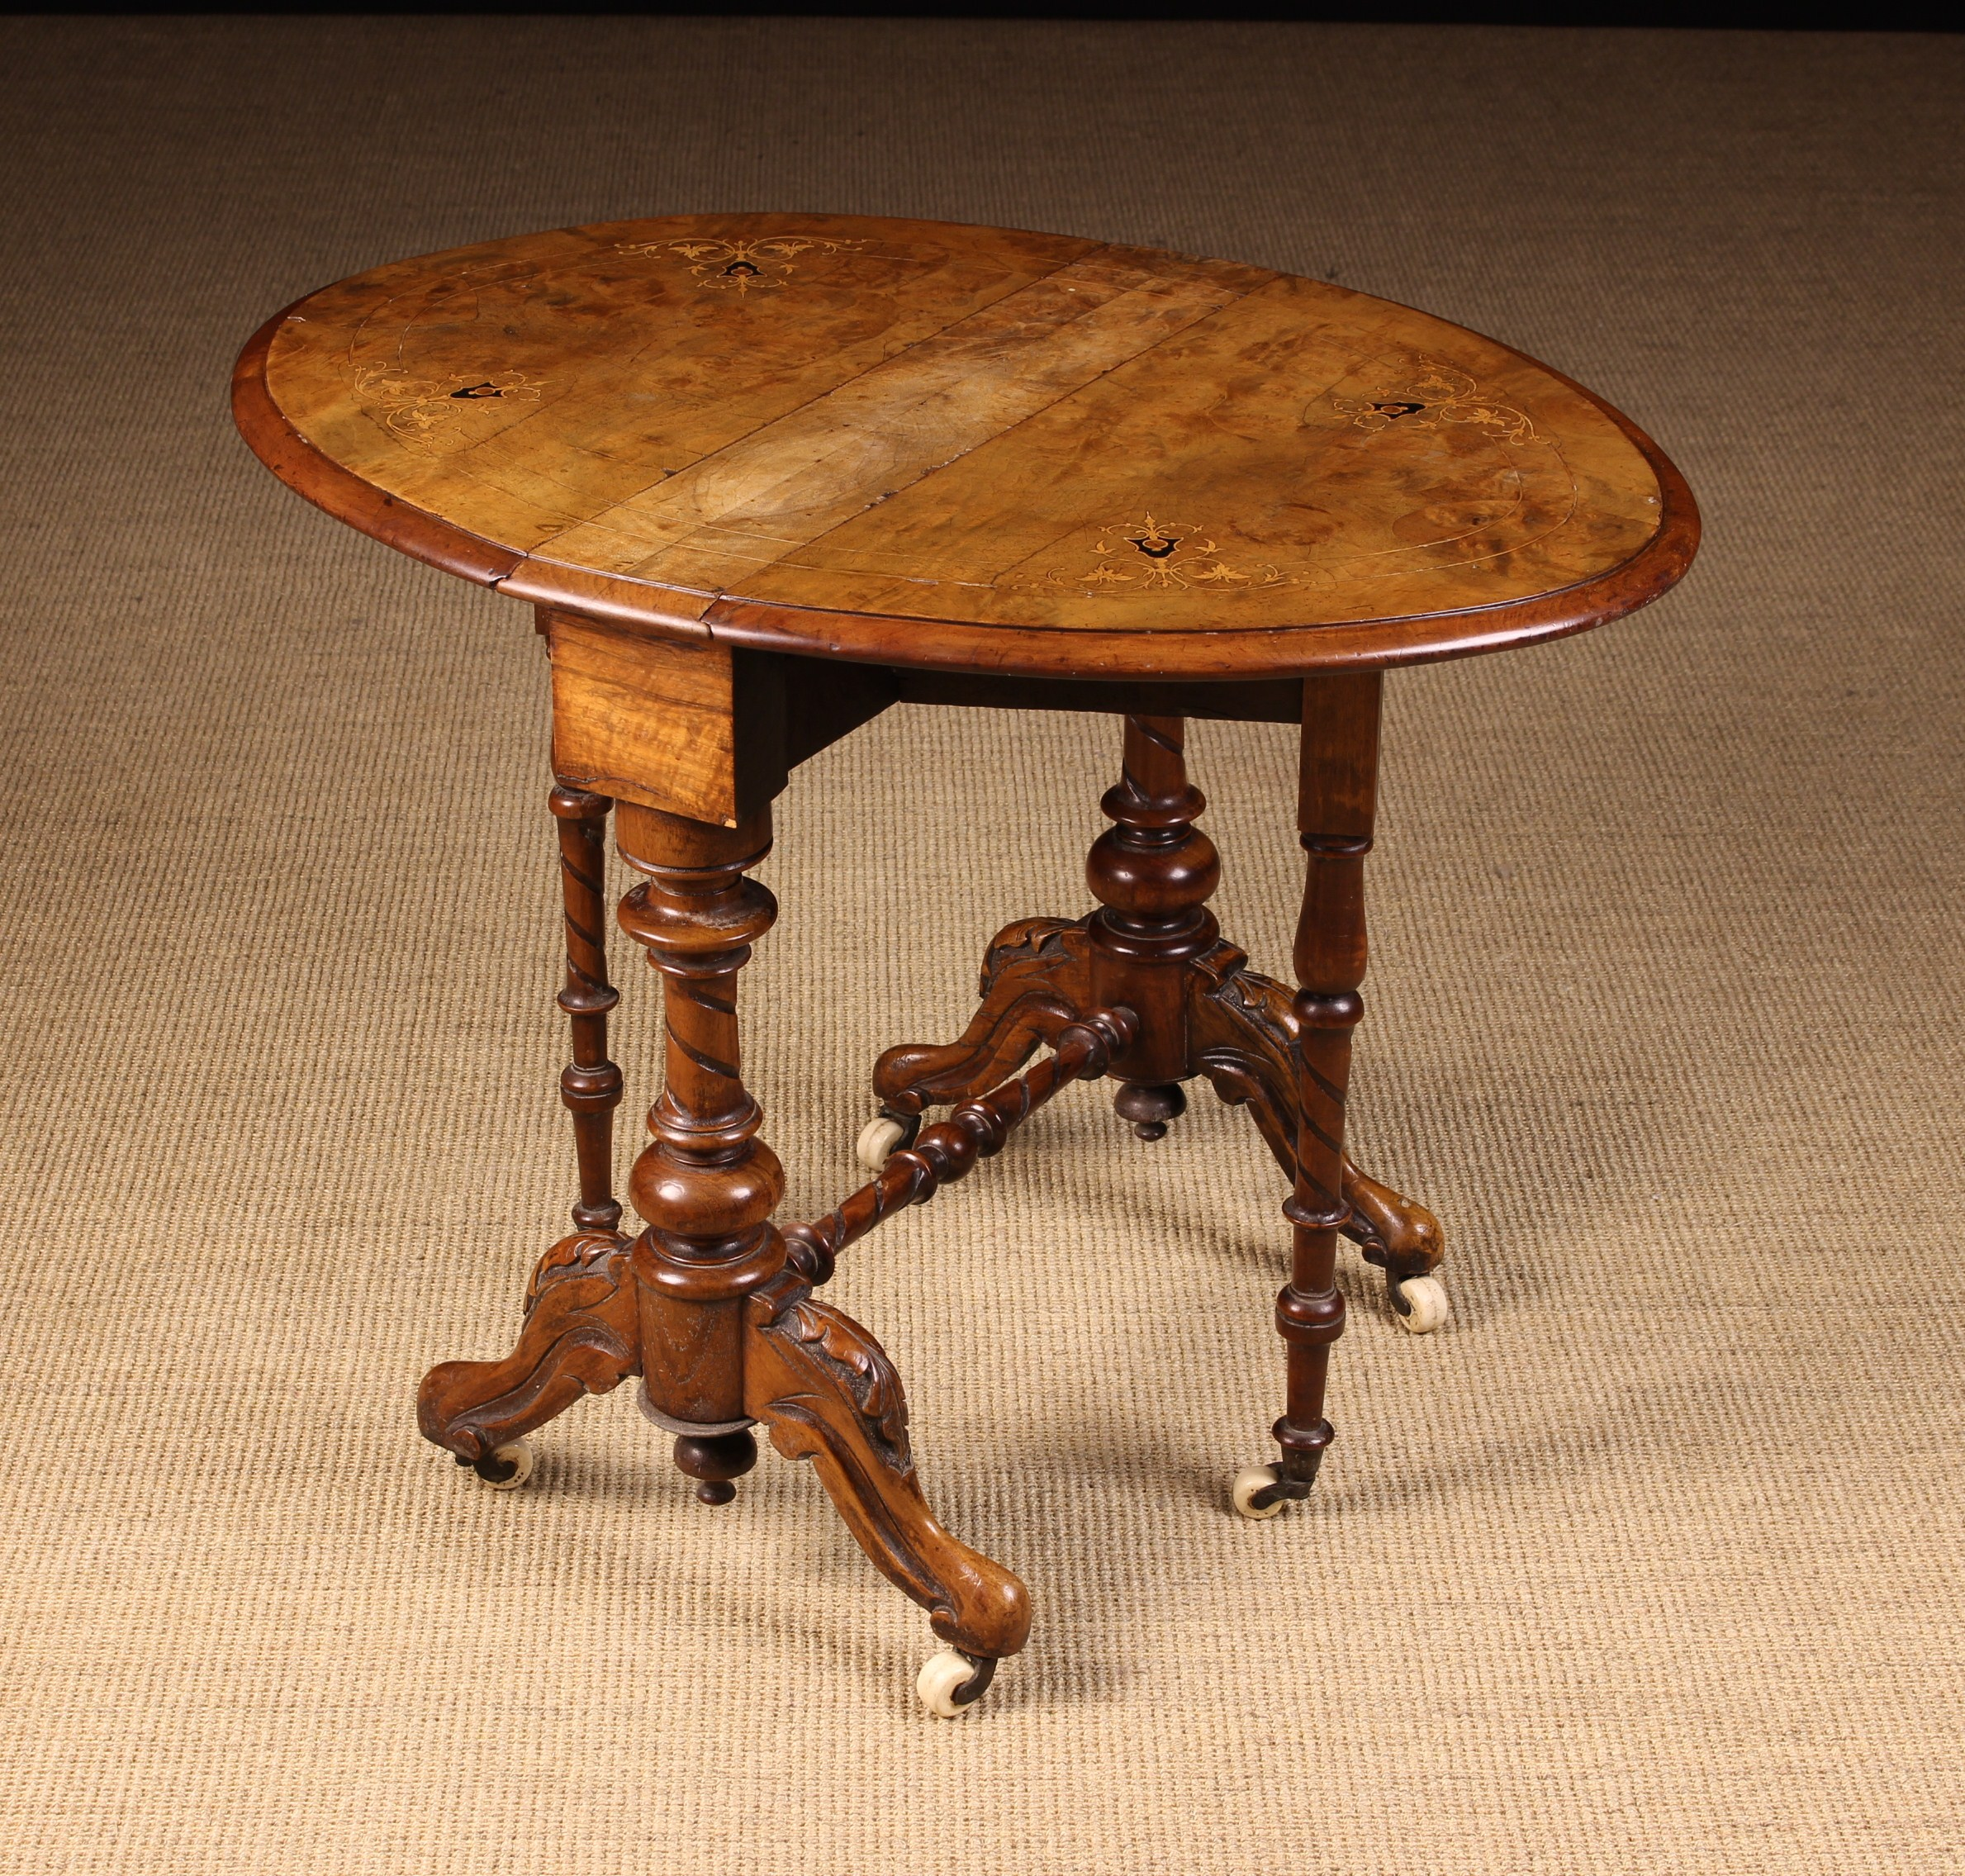 A Small Victorian Figured Walnut Sutherland Table. - Image 2 of 2